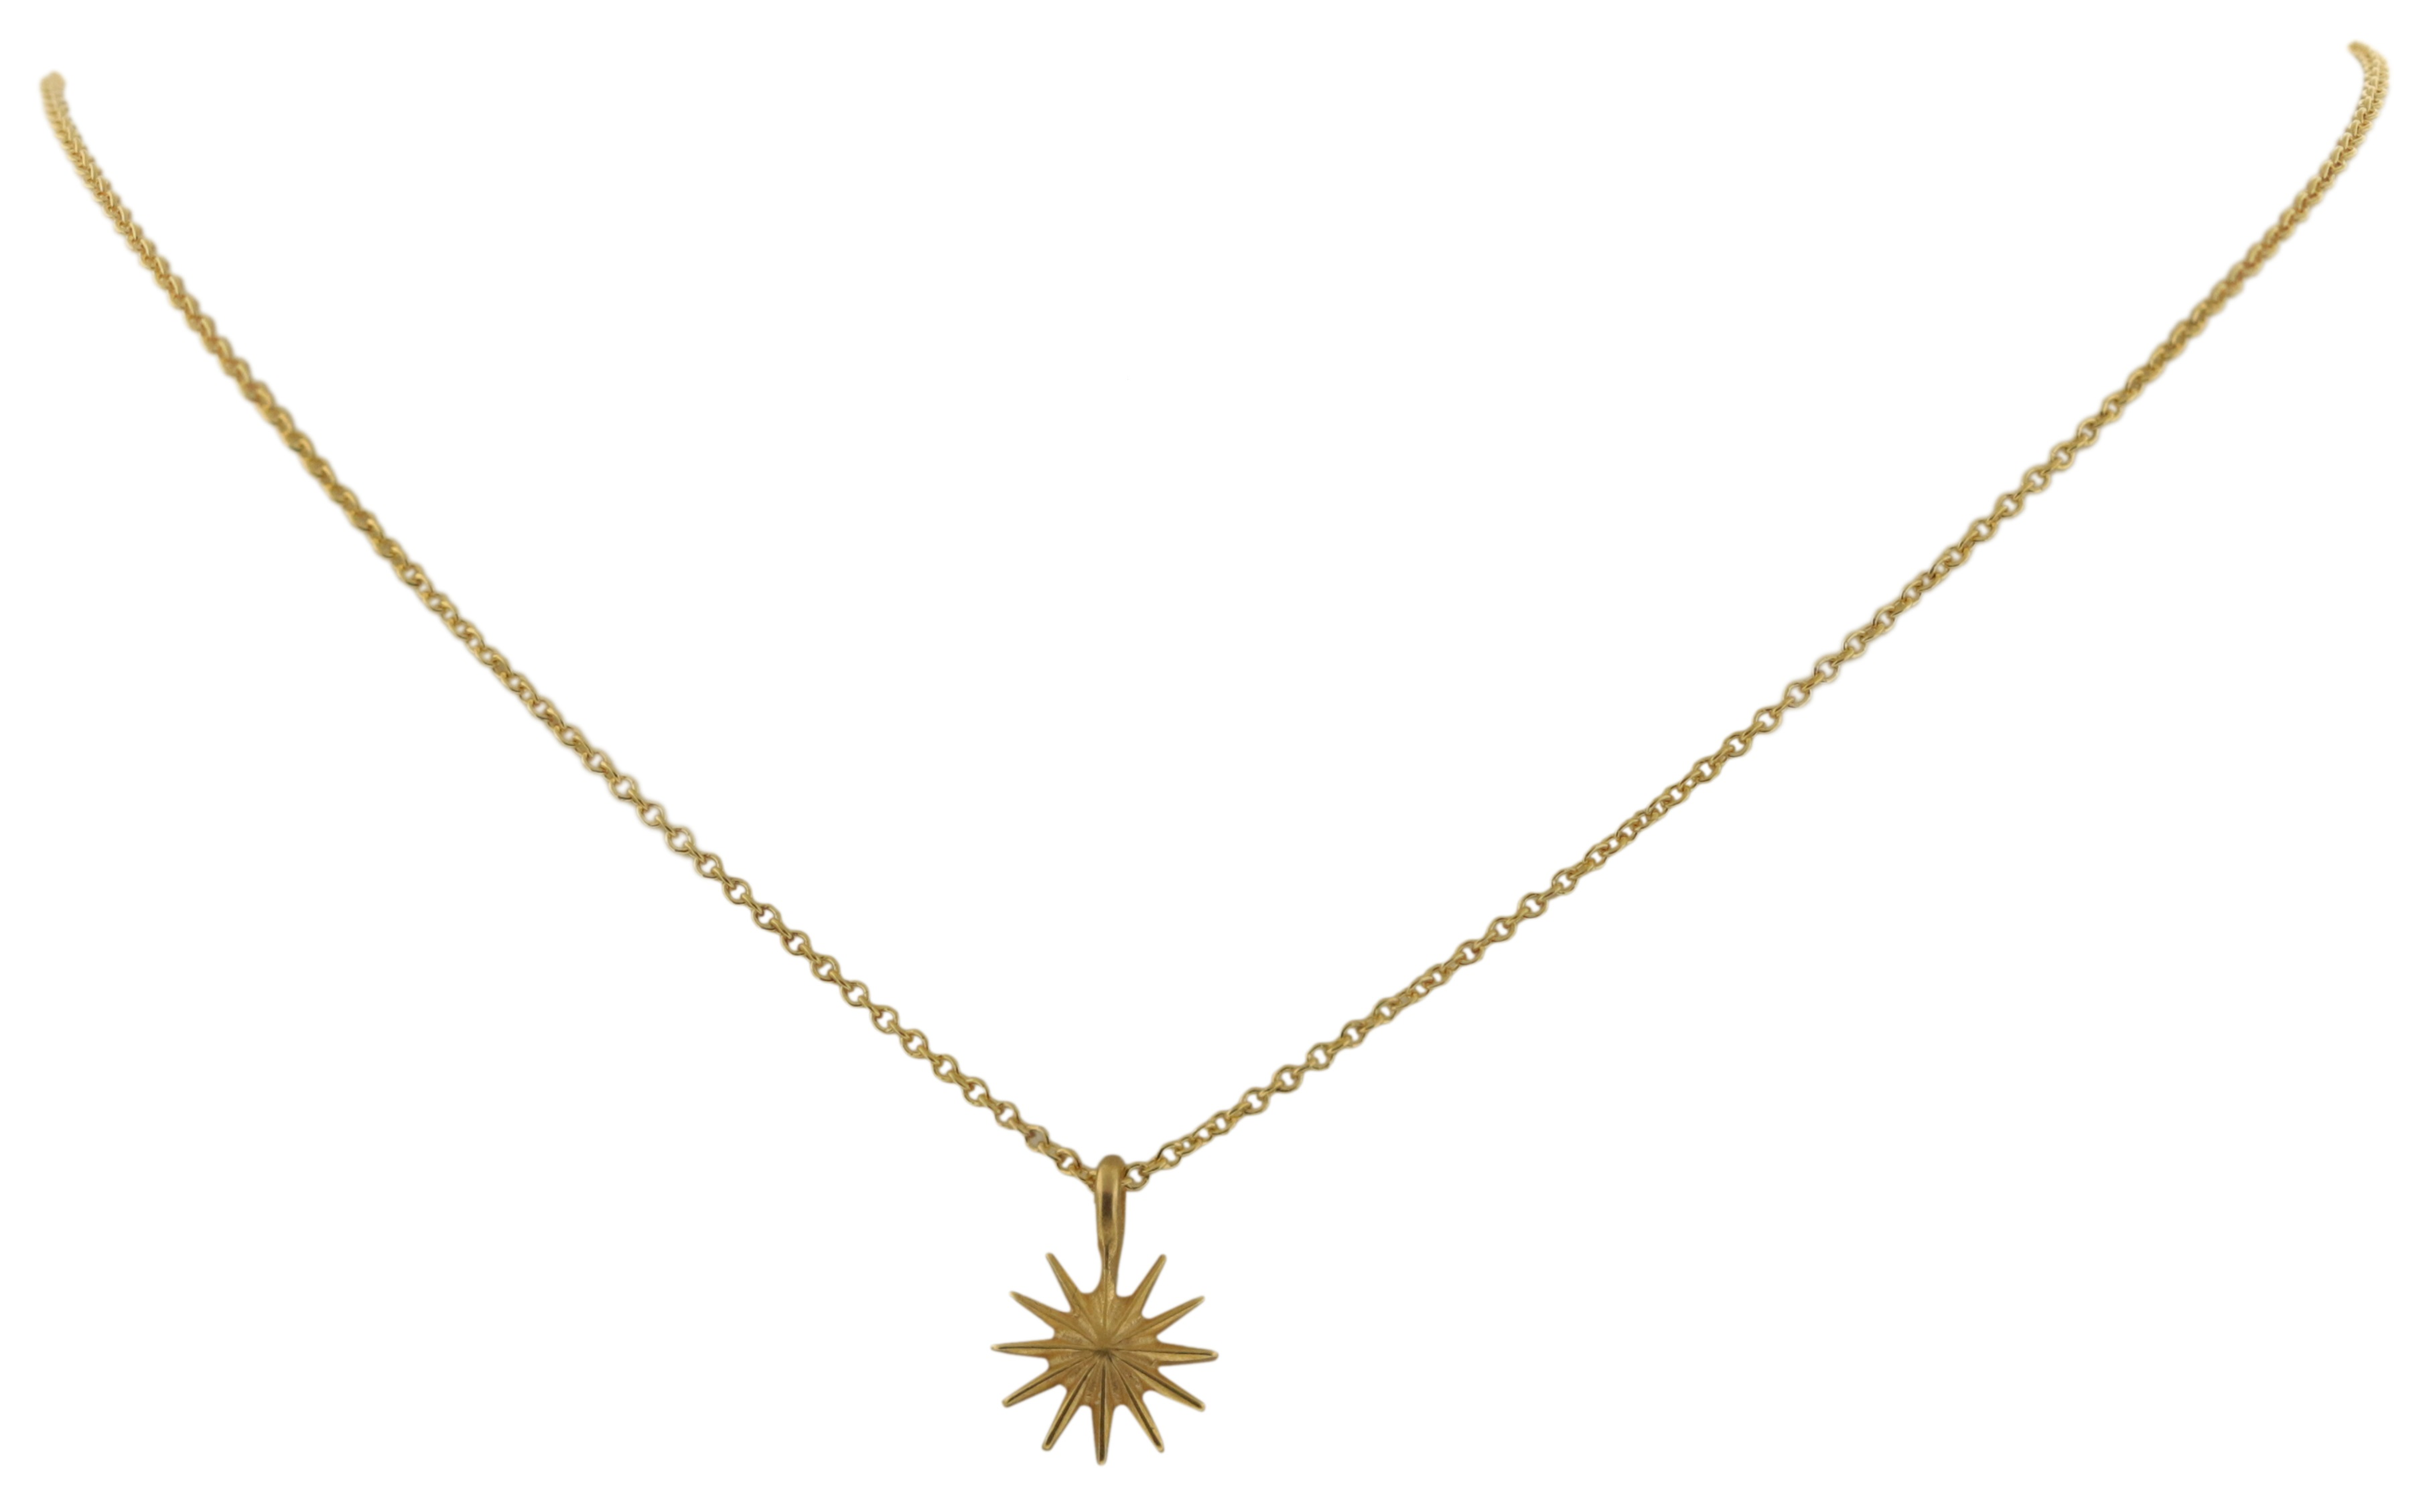 Dogeared Congratulations Gold Dipped Starburst Reminder Boxed Necklace - MG1111